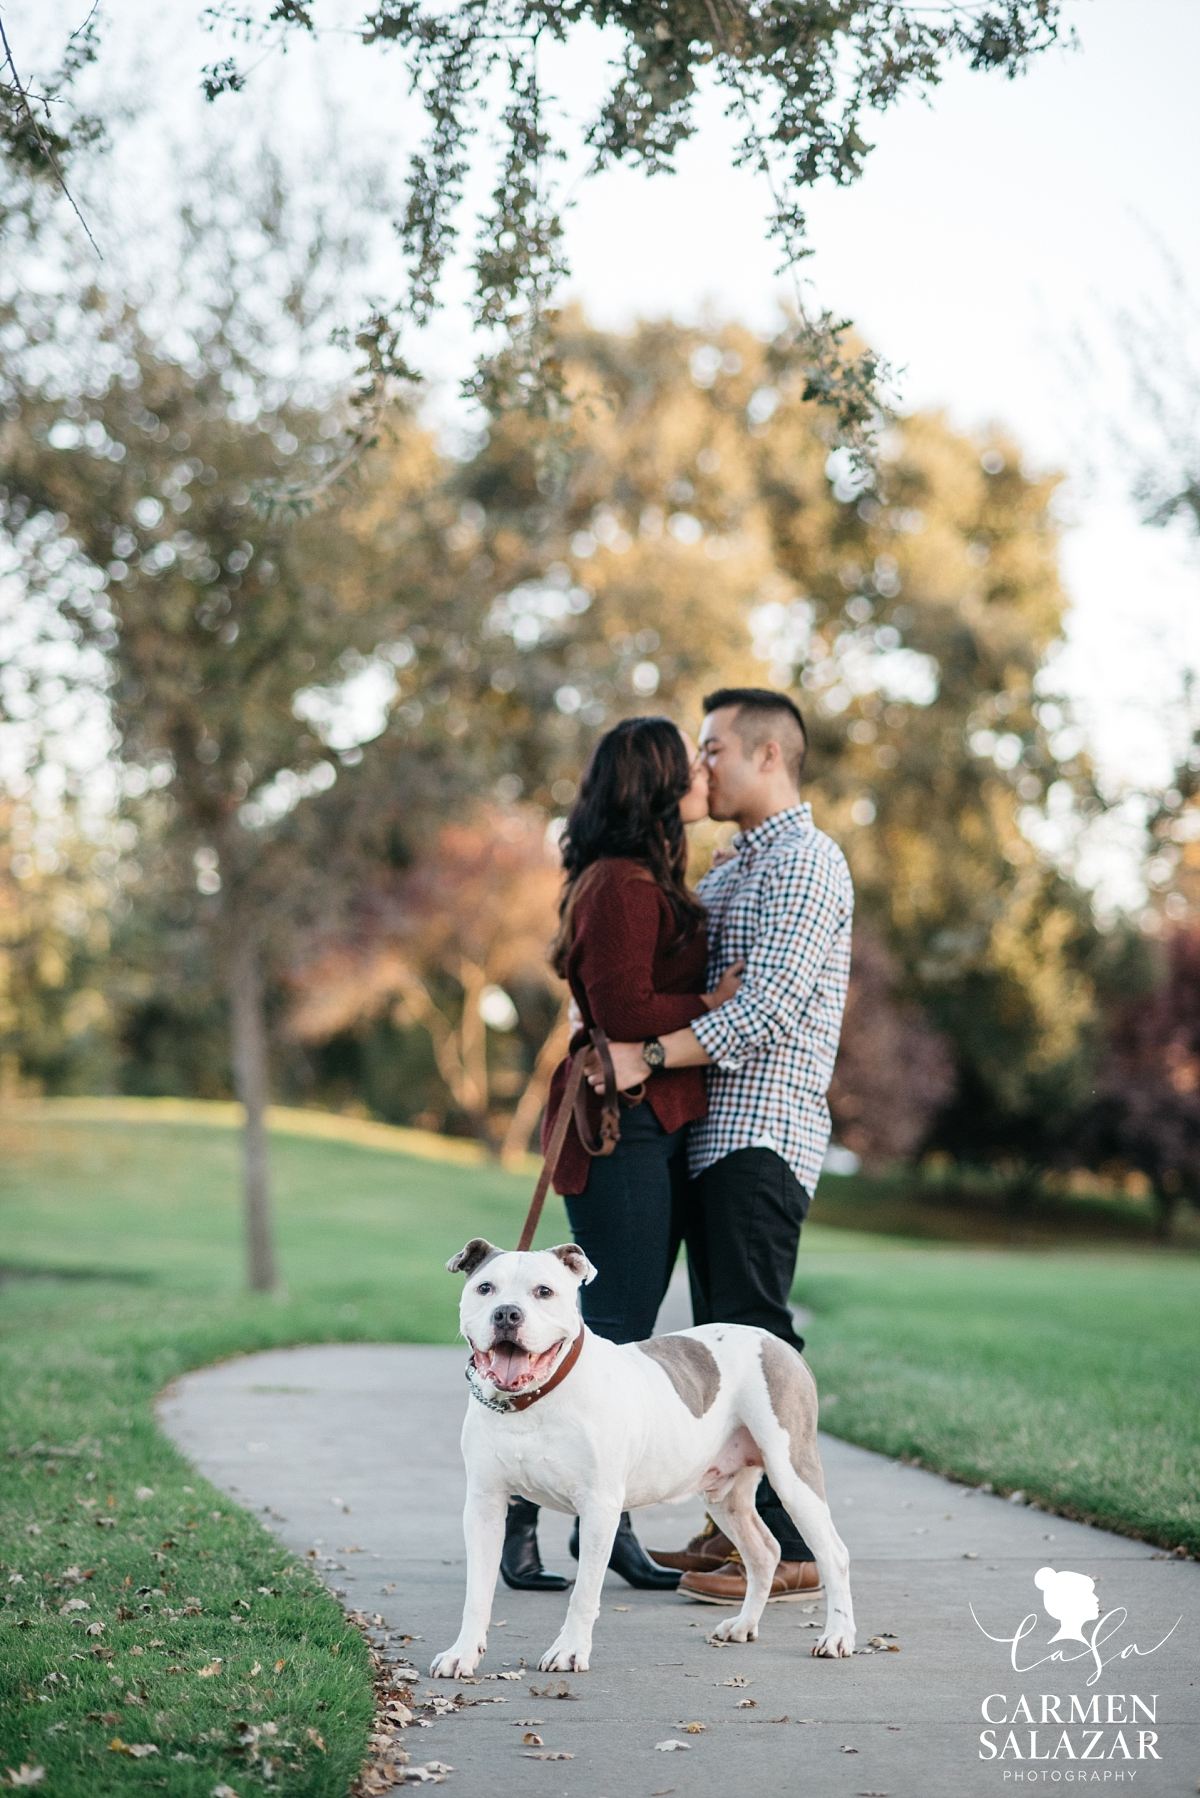 Engagement sessions with cute dogs - Carmen Salazar